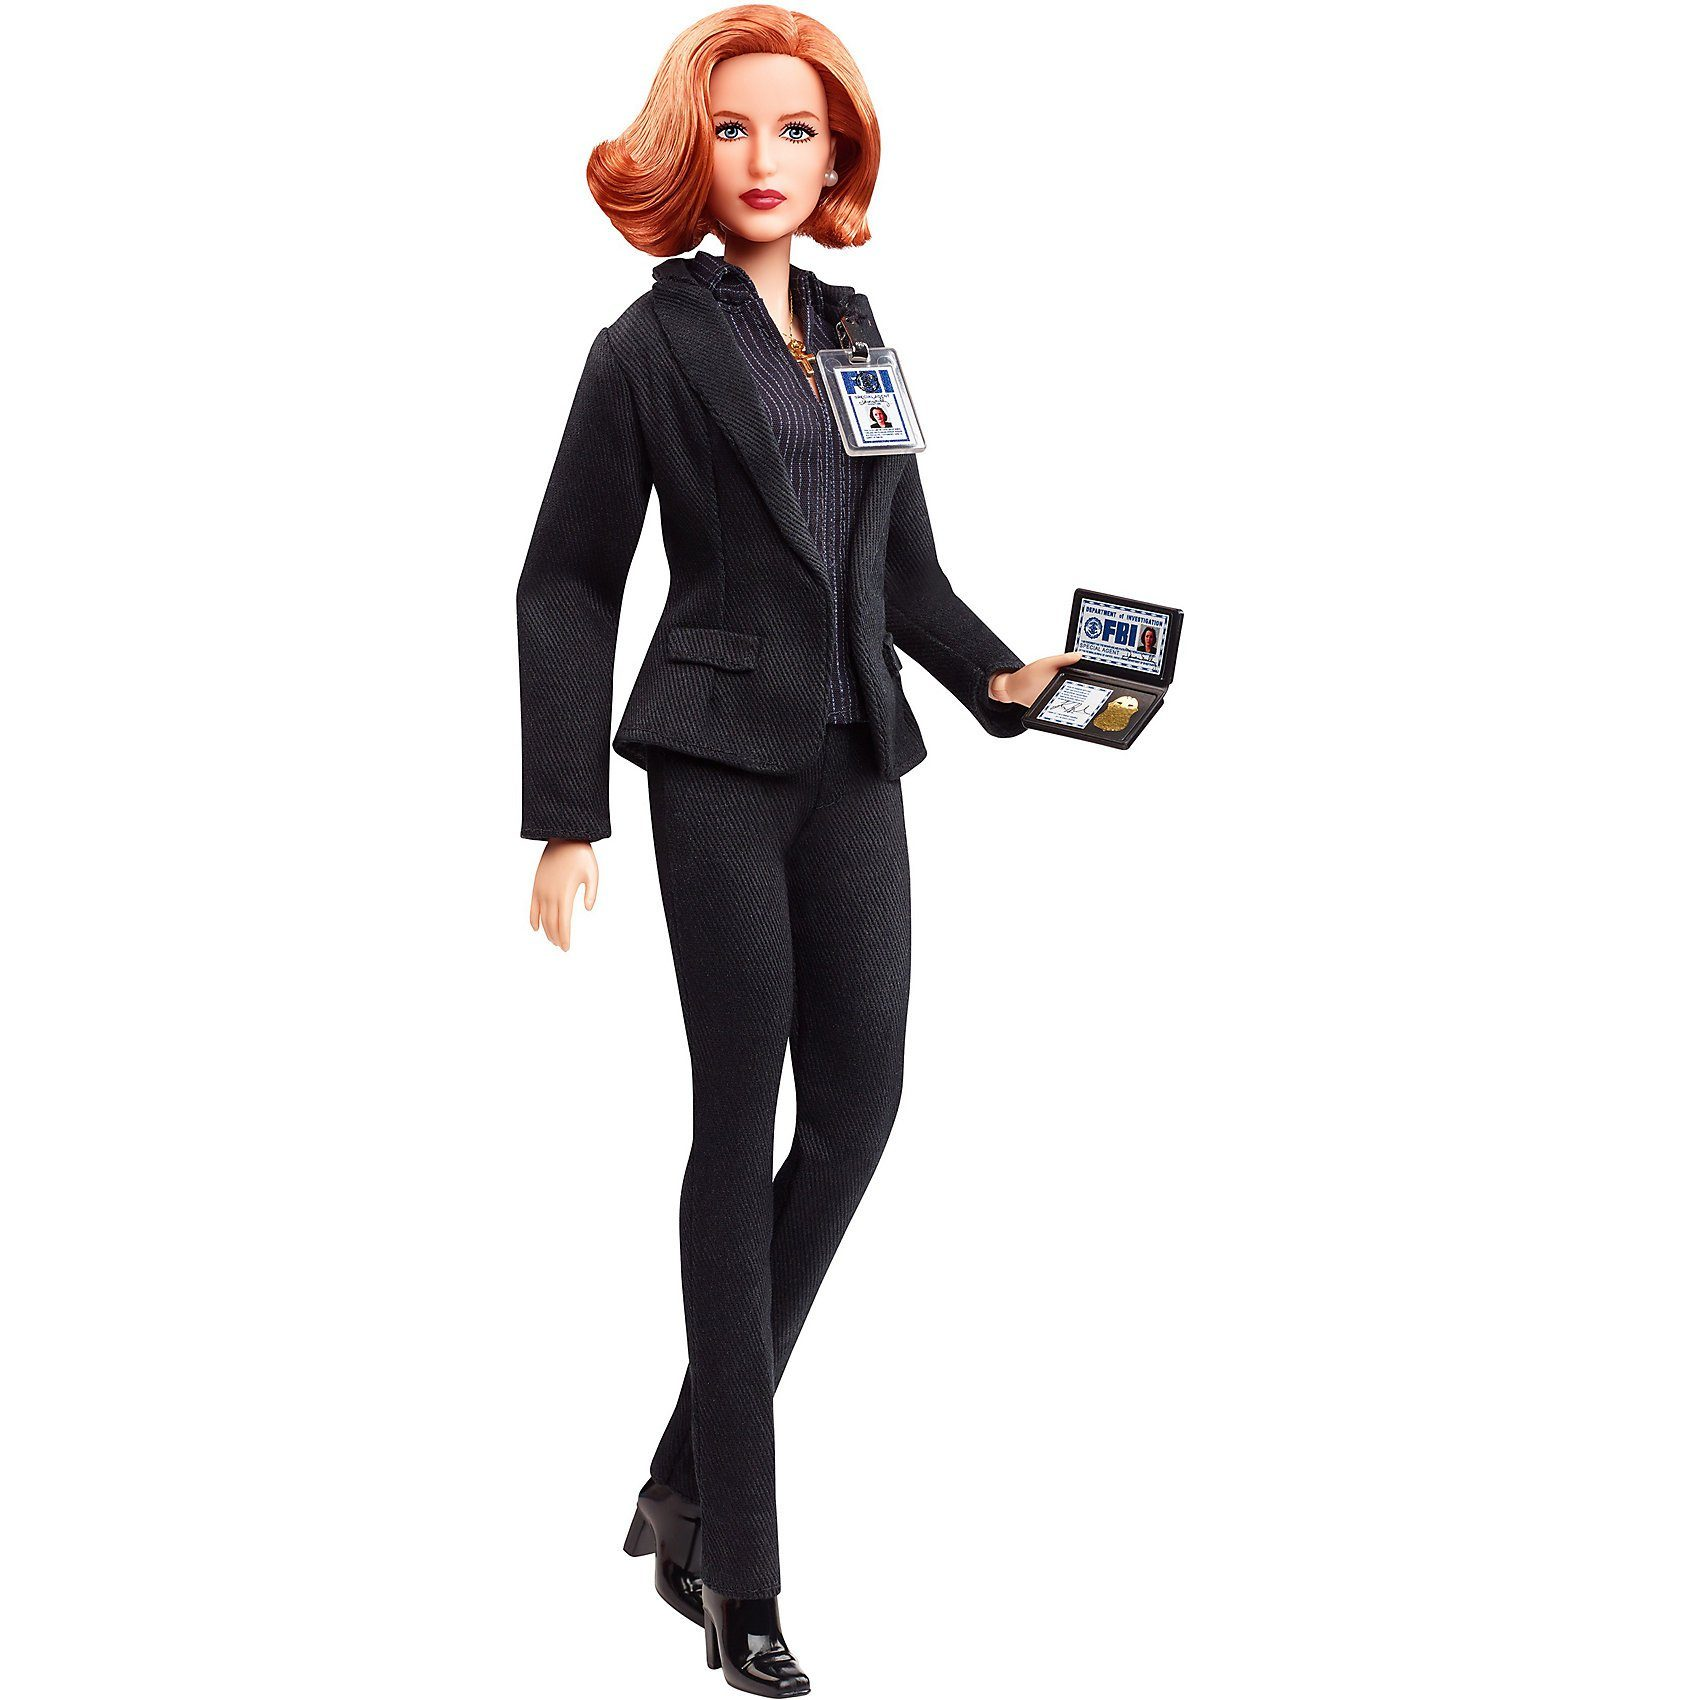 Mattel® Barbie Signature X Files Scully Barbie Puppe